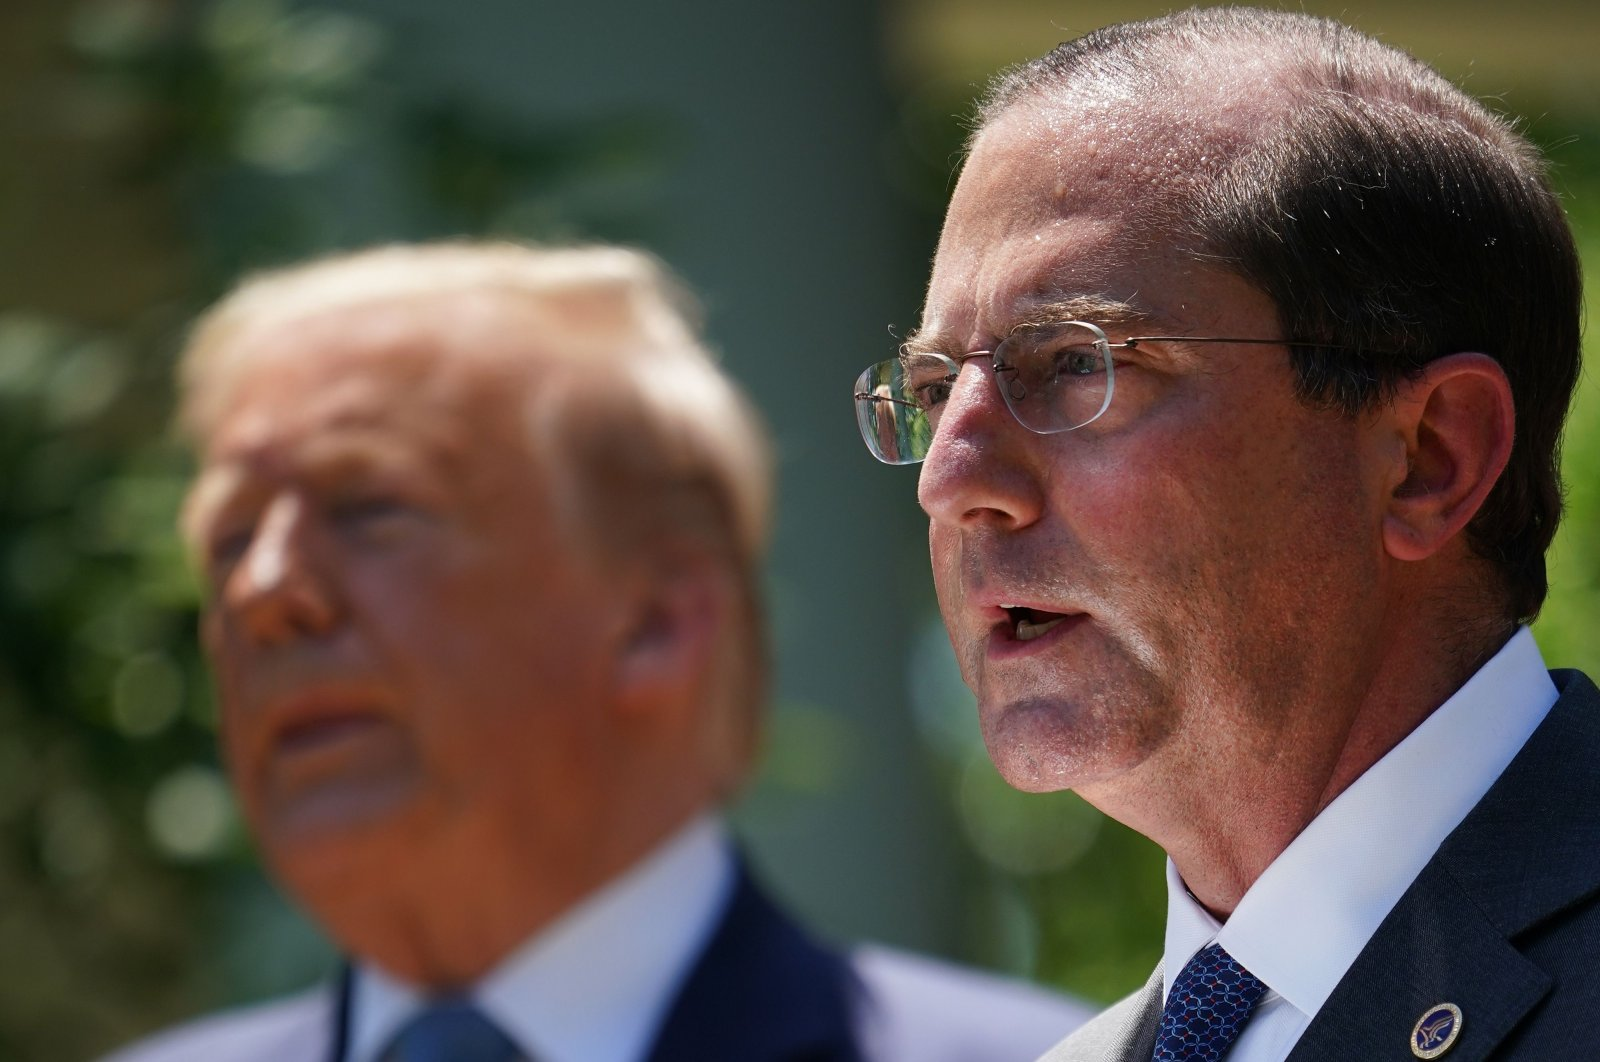 U.S. Secretary of Health and Human Services Alex Azar (R) speaks as U.S. President Donald Trump (L) looks on, in the Rose Garden of the White House in Washington, D.C., U.S., May 15, 2020. (AFP Photo)